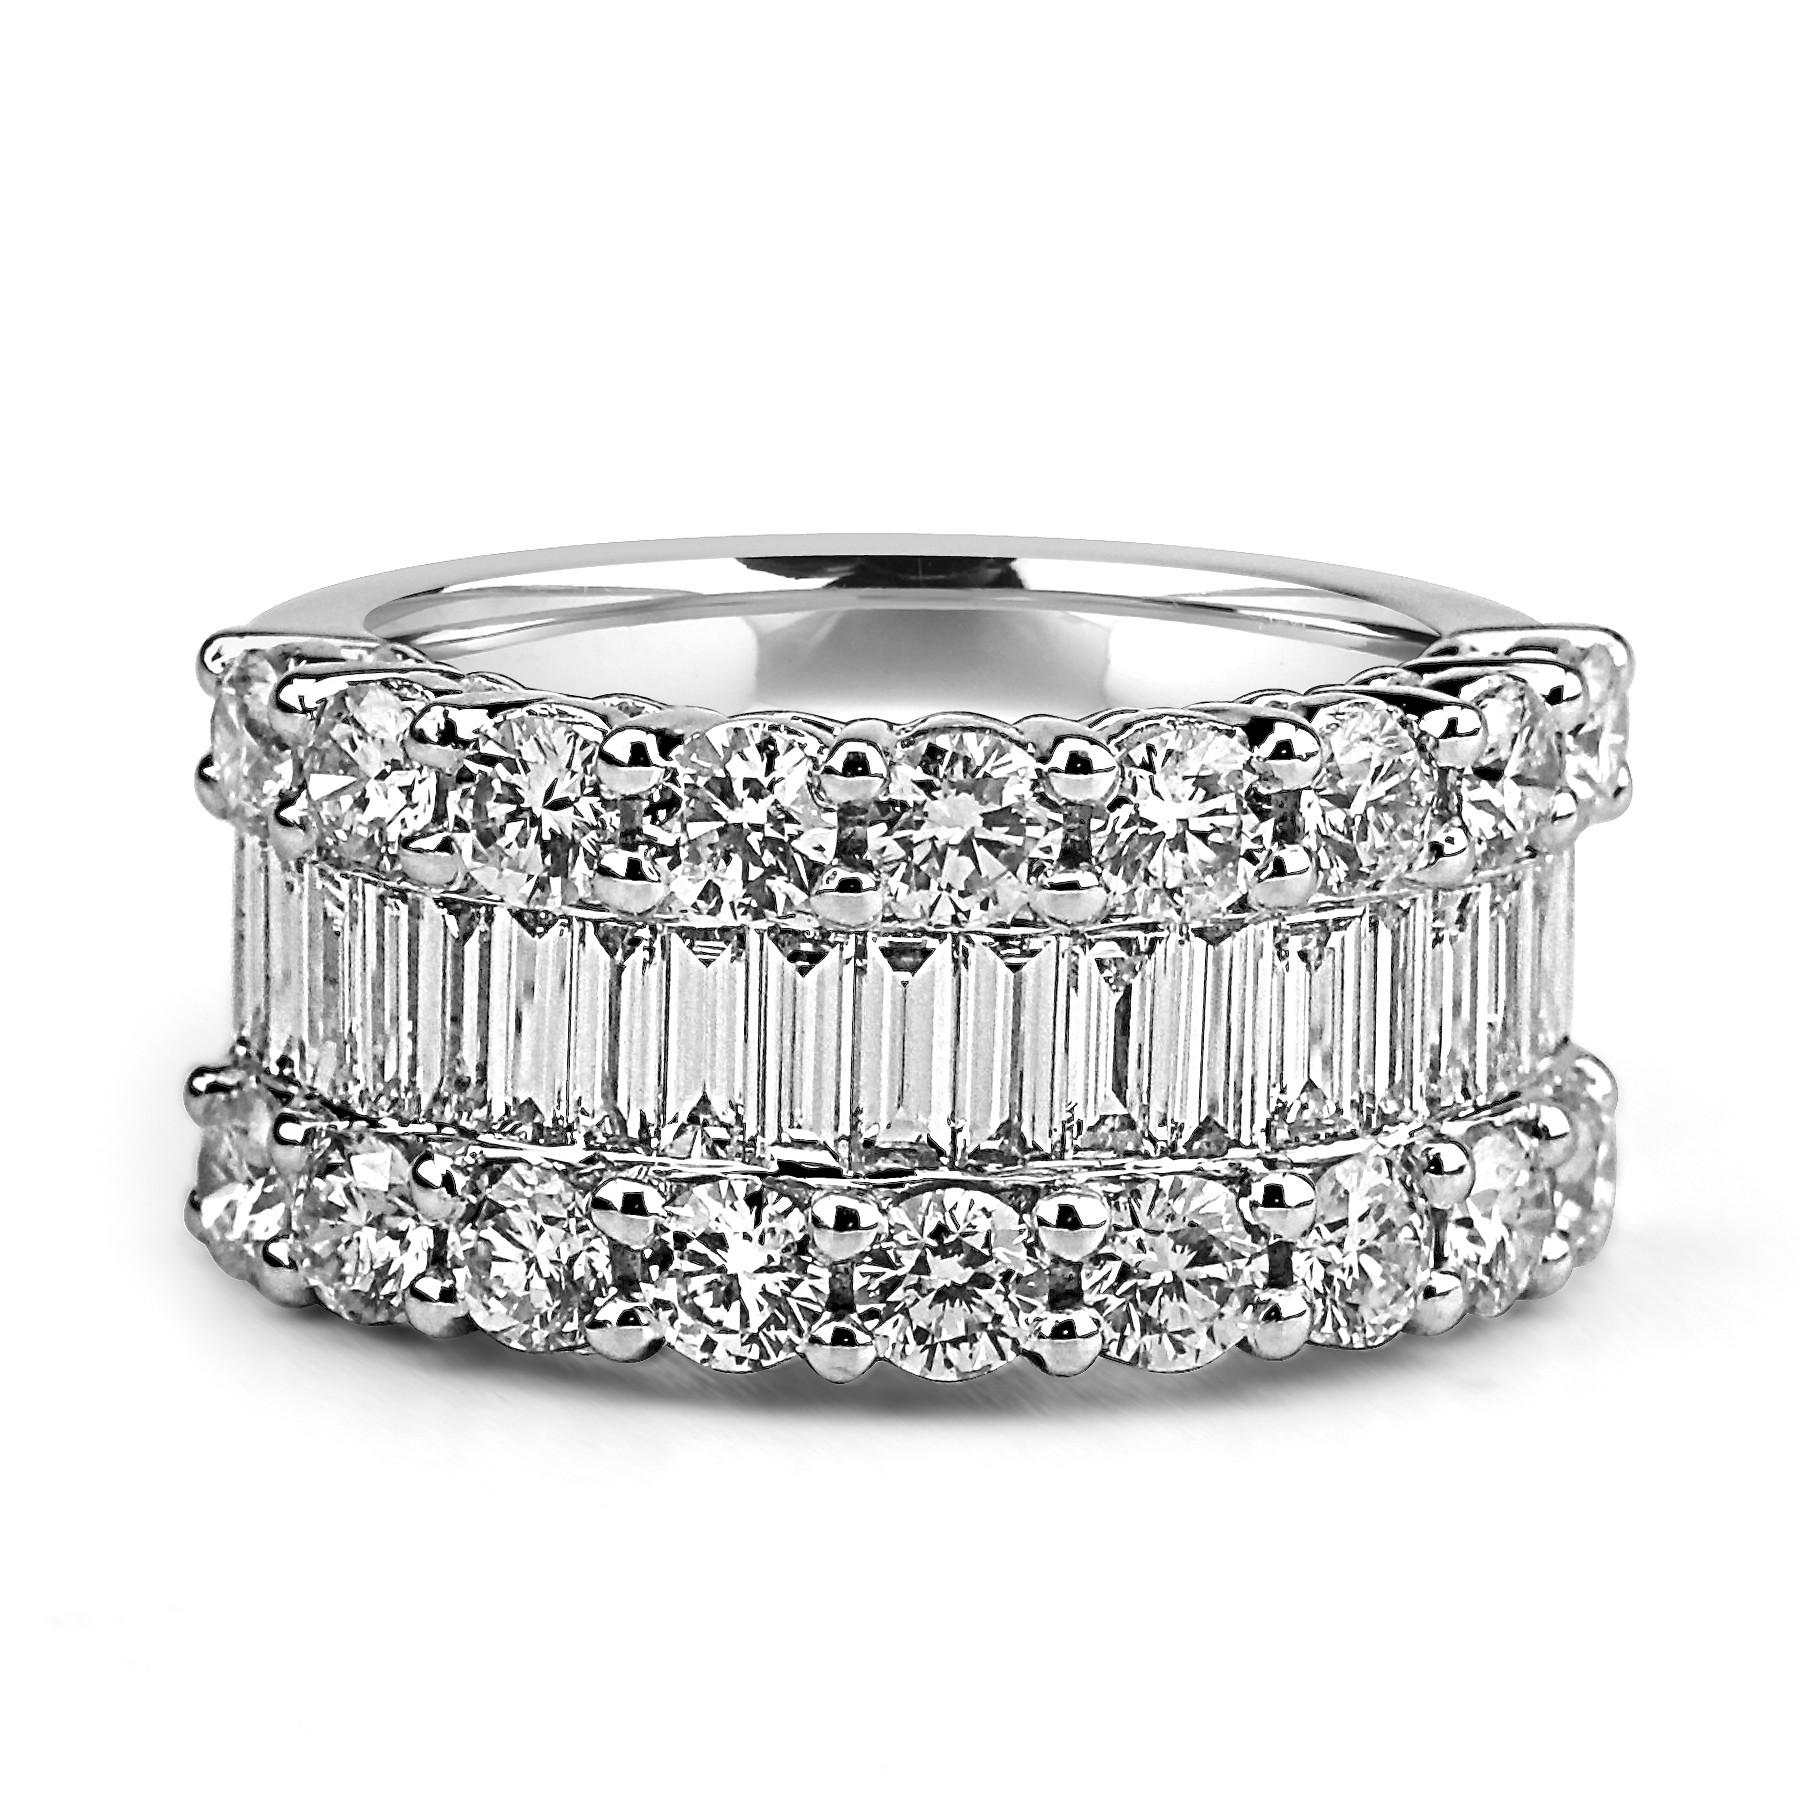 diamond bands rings platinum wedding photography mens band ideas of baguette for men on him